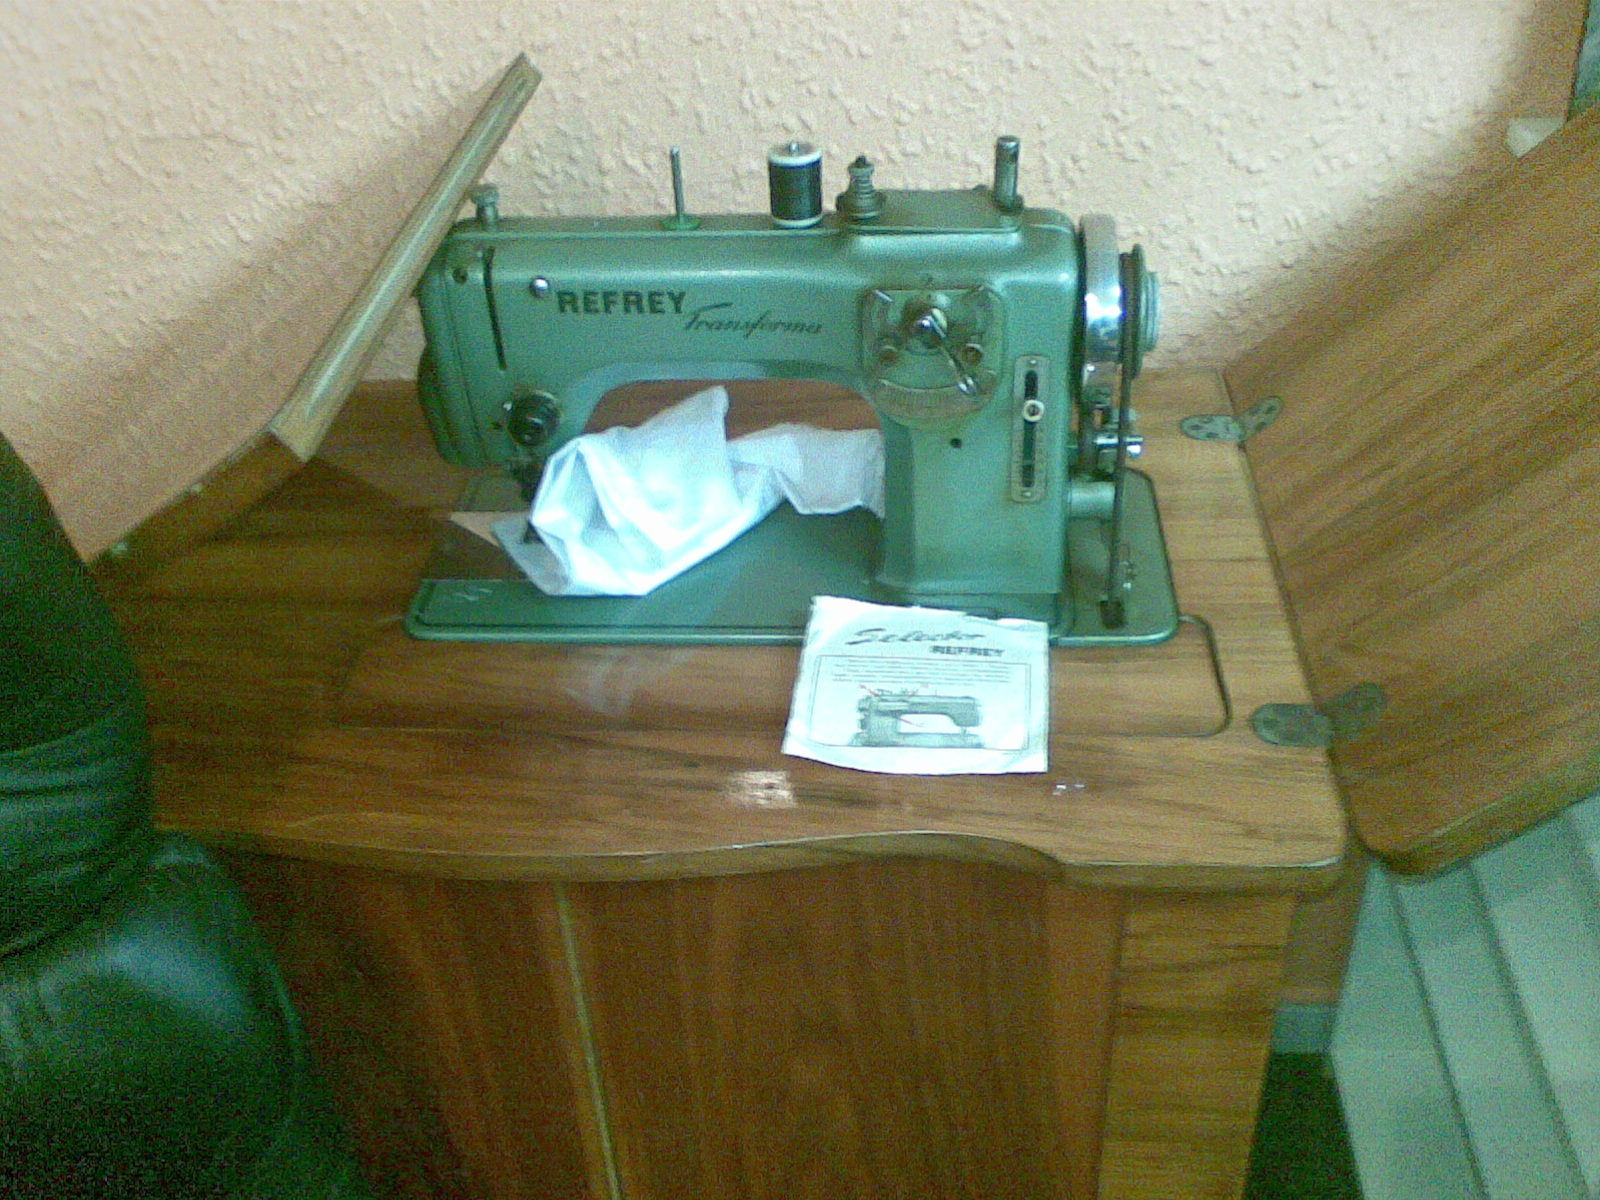 Mueble Maquina De Coser Refrey Affordable Mquina De Coser Con  # Muebles Maquina De Coser Segunda Mano